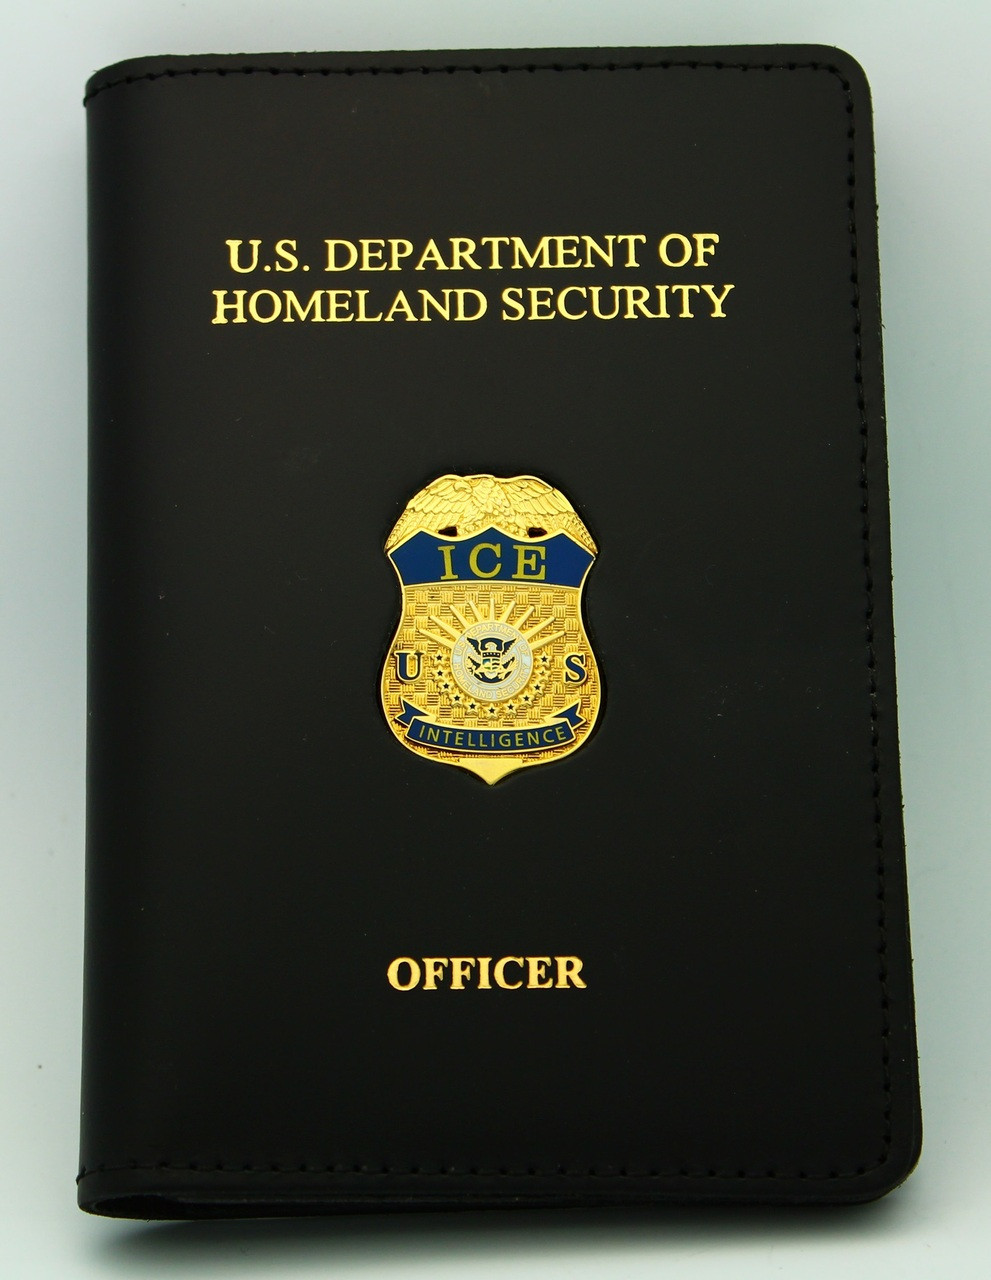 Immigration and Customs Enforcement Intelligence Officer Credential Case with ICE Intelligence Mini Badge Pin and Embossing